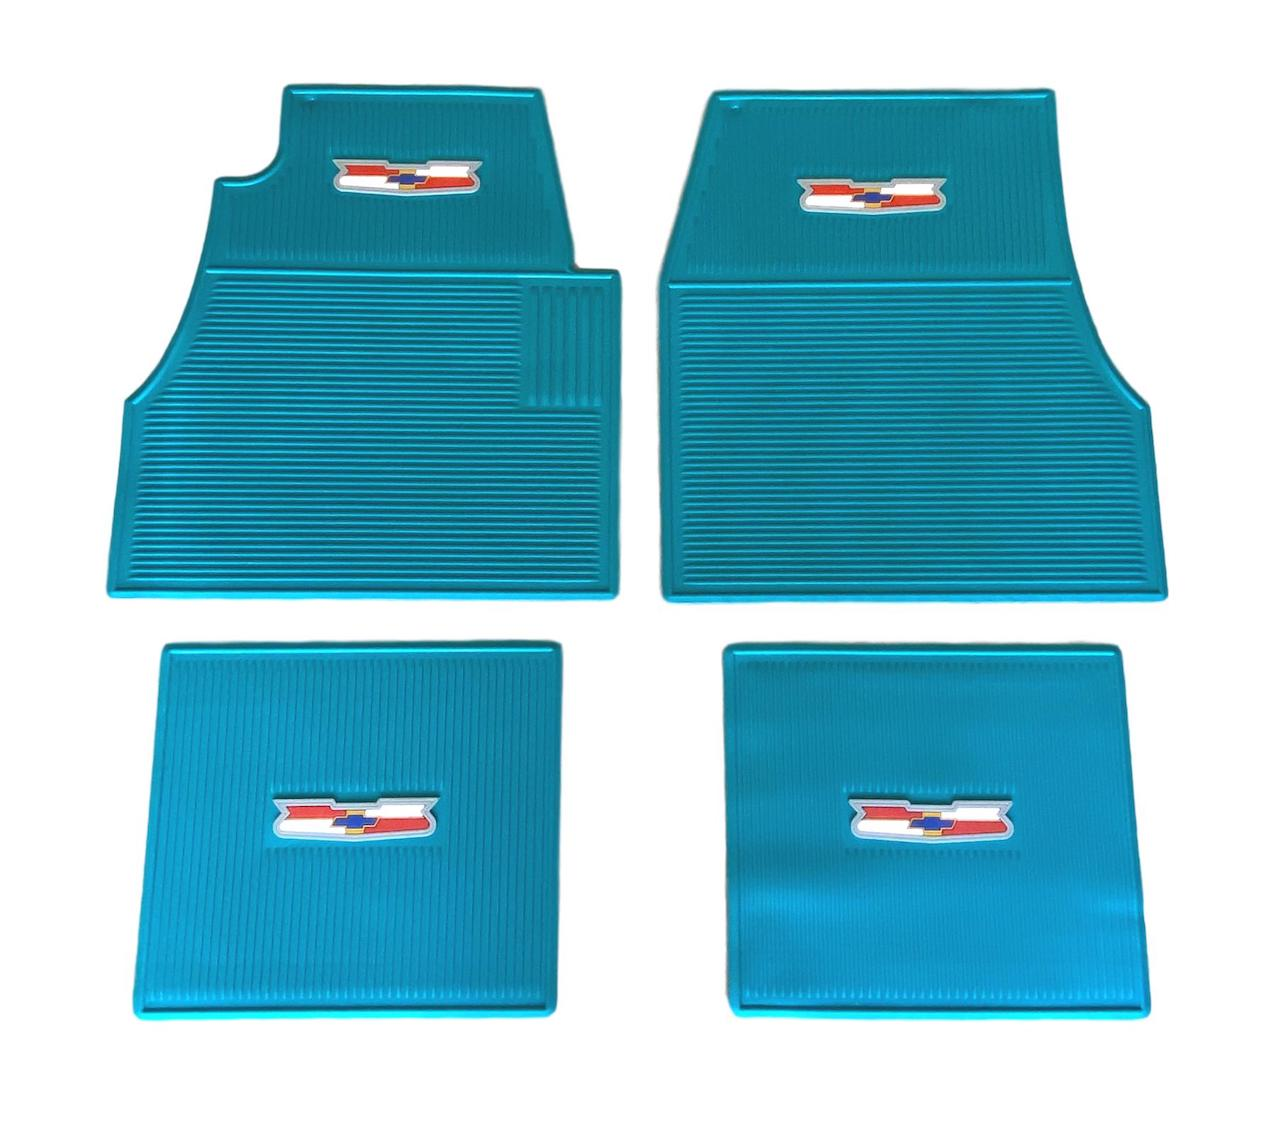 1955 1956 1957 Chevy Turquoise Rubber Floor Mats With Crest Logo